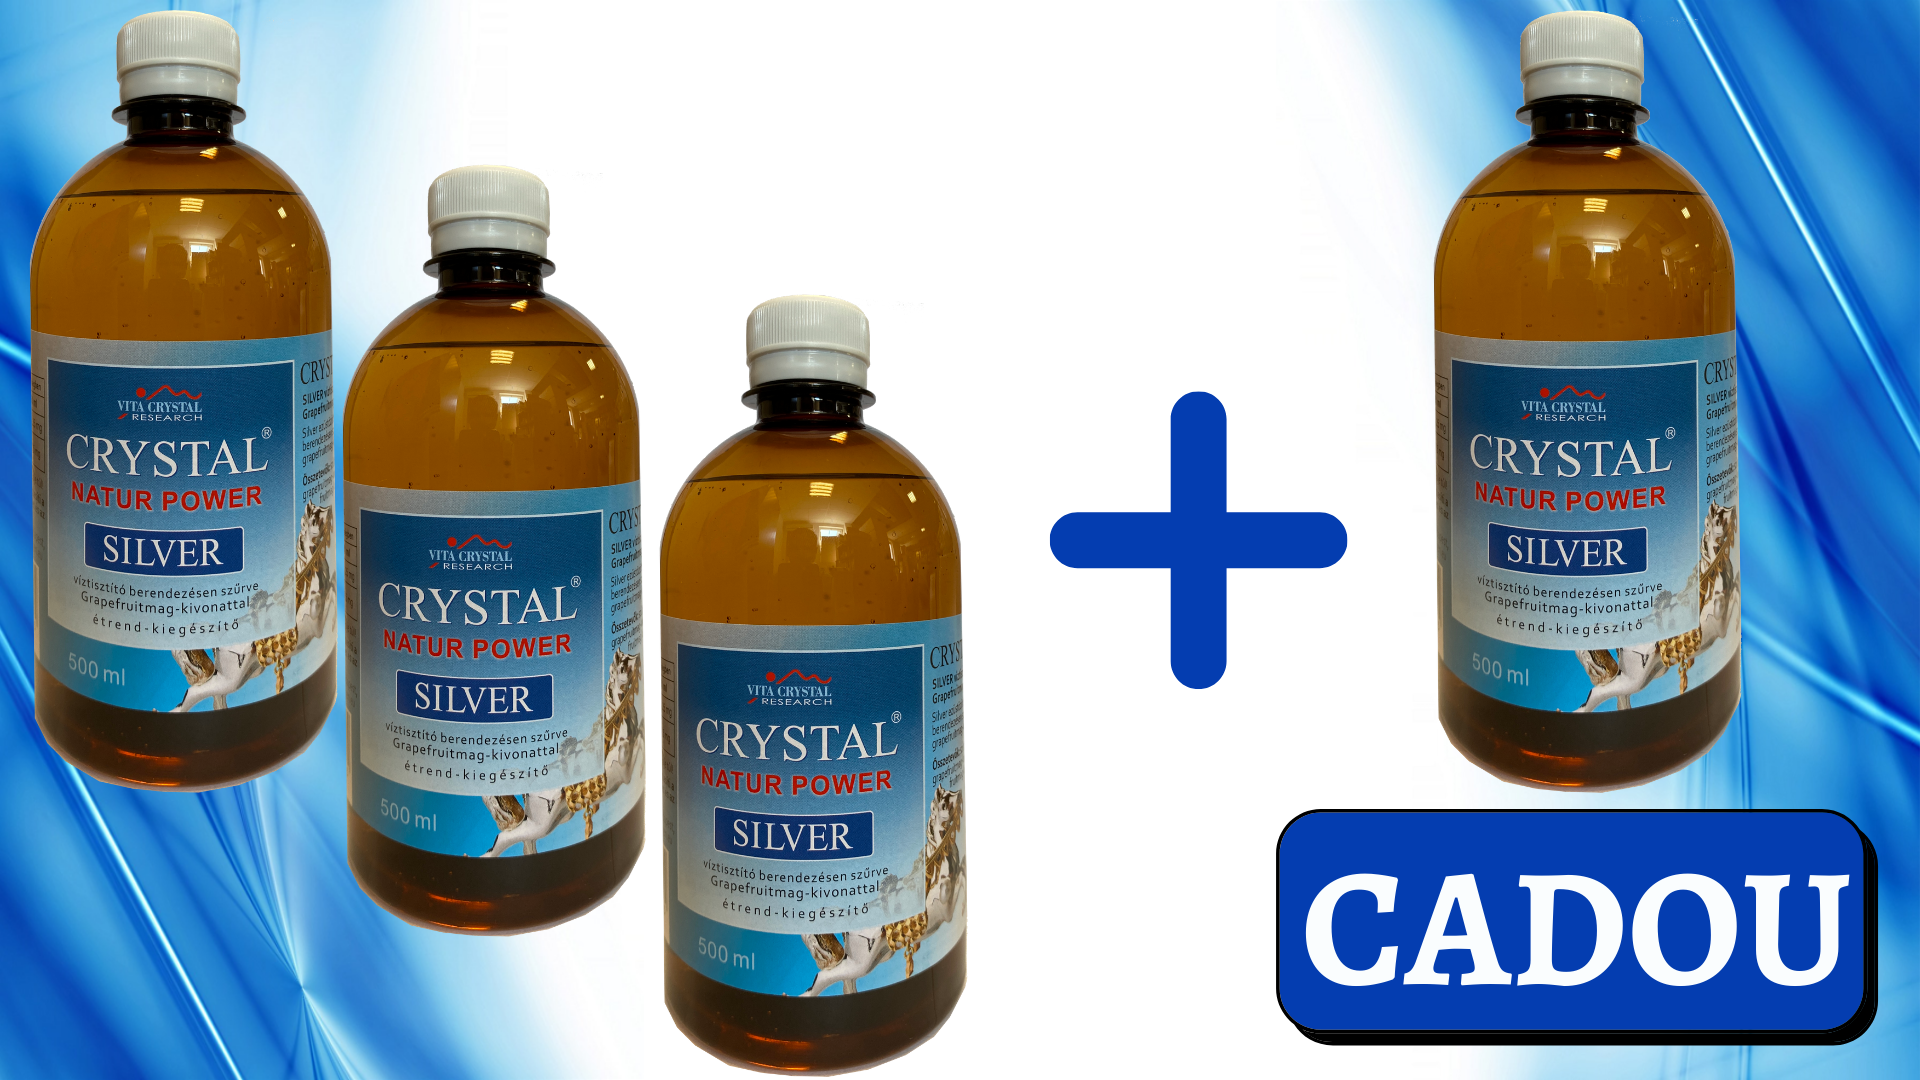 PROMO CRYSTAL SILVER 500 ml 3+1